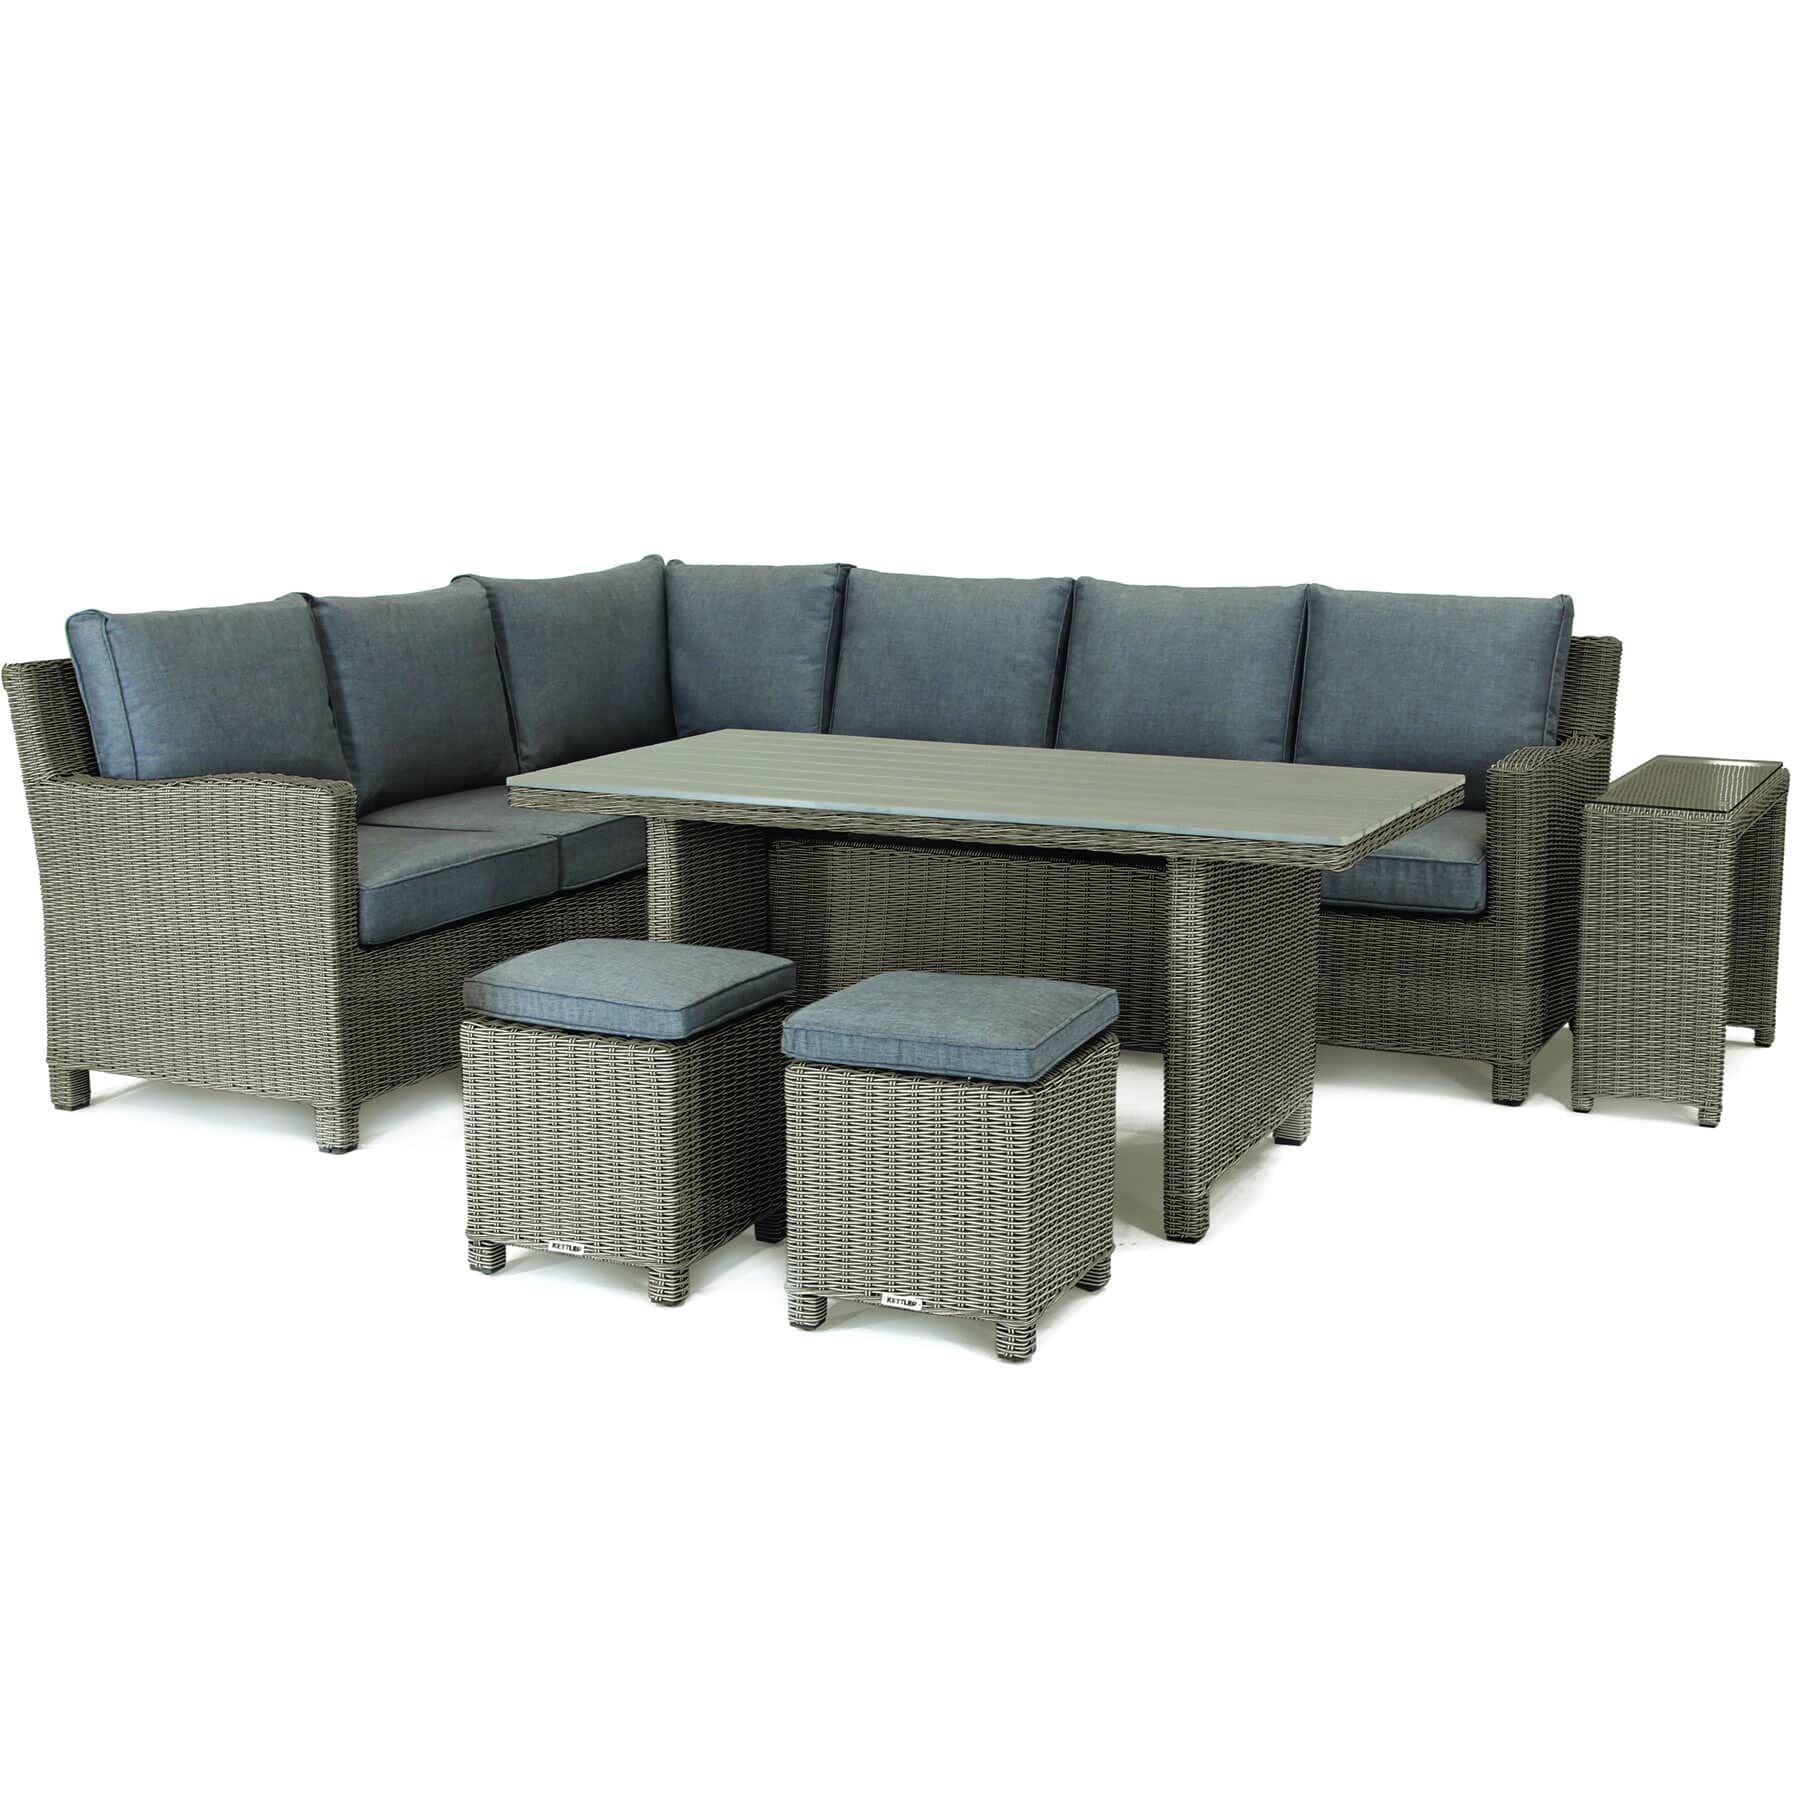 Rattan Corner Sofa 0 Finance: Kettler Palma Round Set Rattan With Taupe Cushions